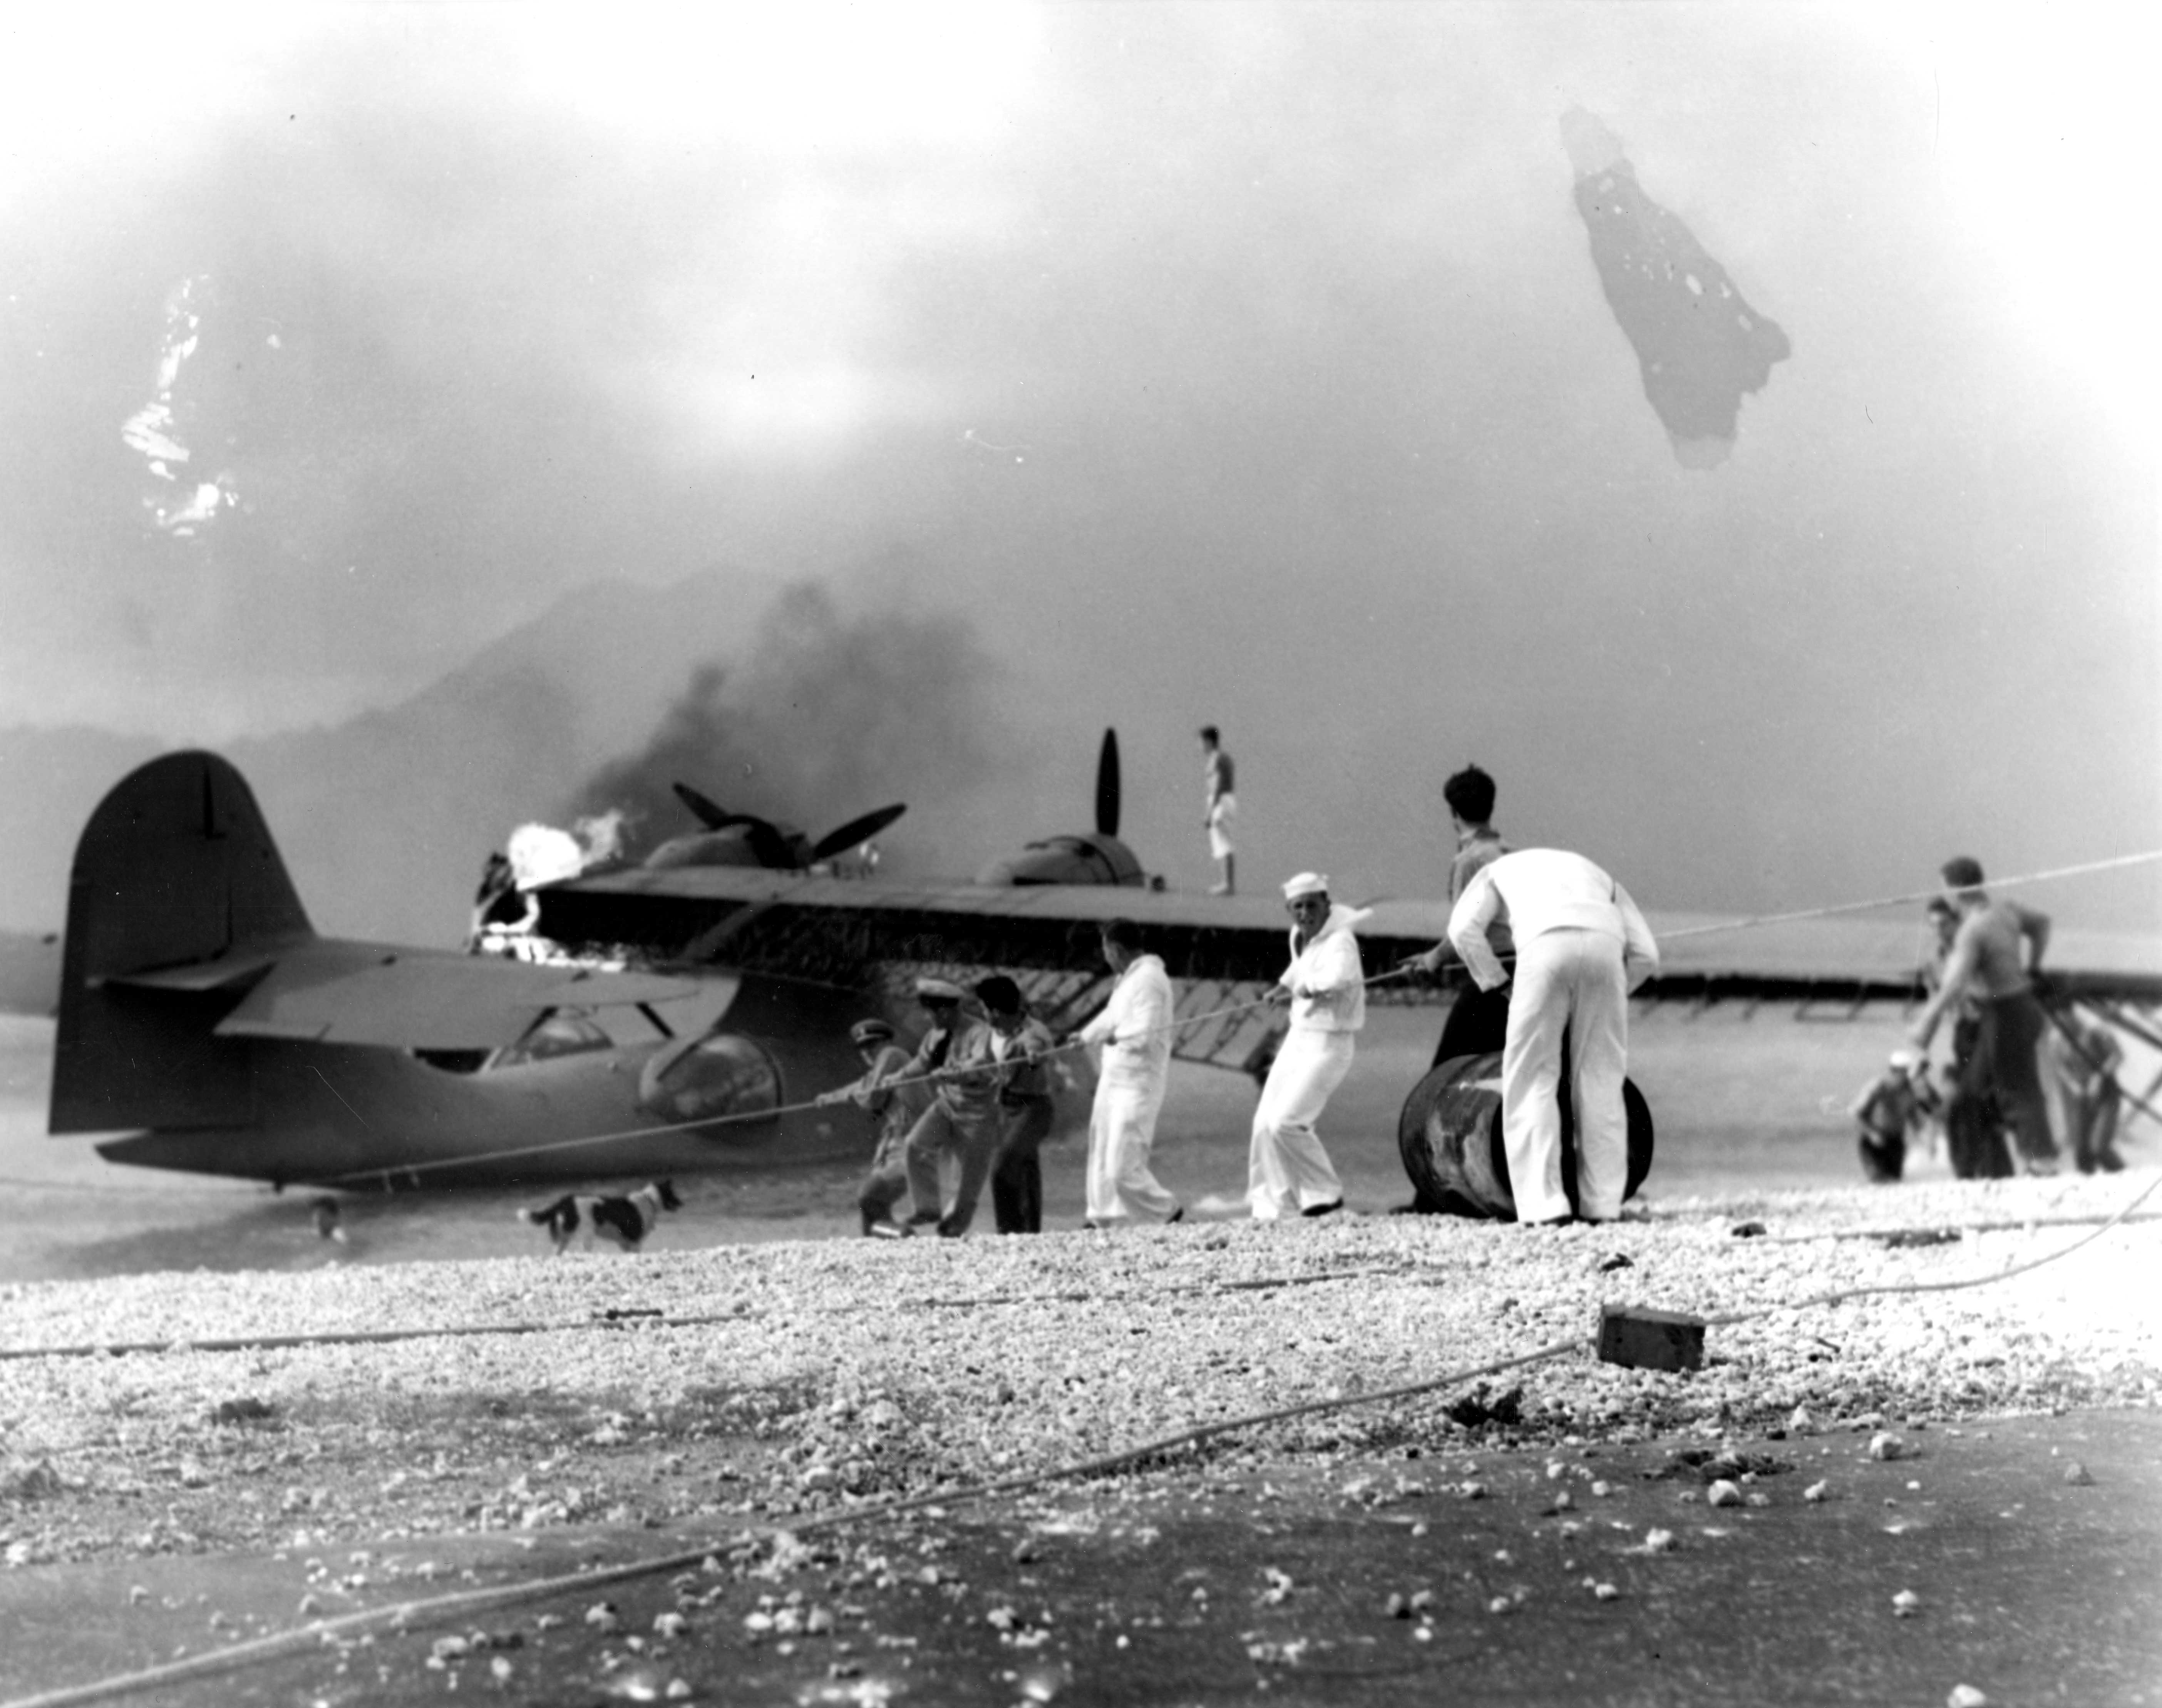 Sailors attempt to save a burning amphibious aircraft at during the Japanese attack on Pearl Harbor. (Photo: Handout/Reuters/Newscom)